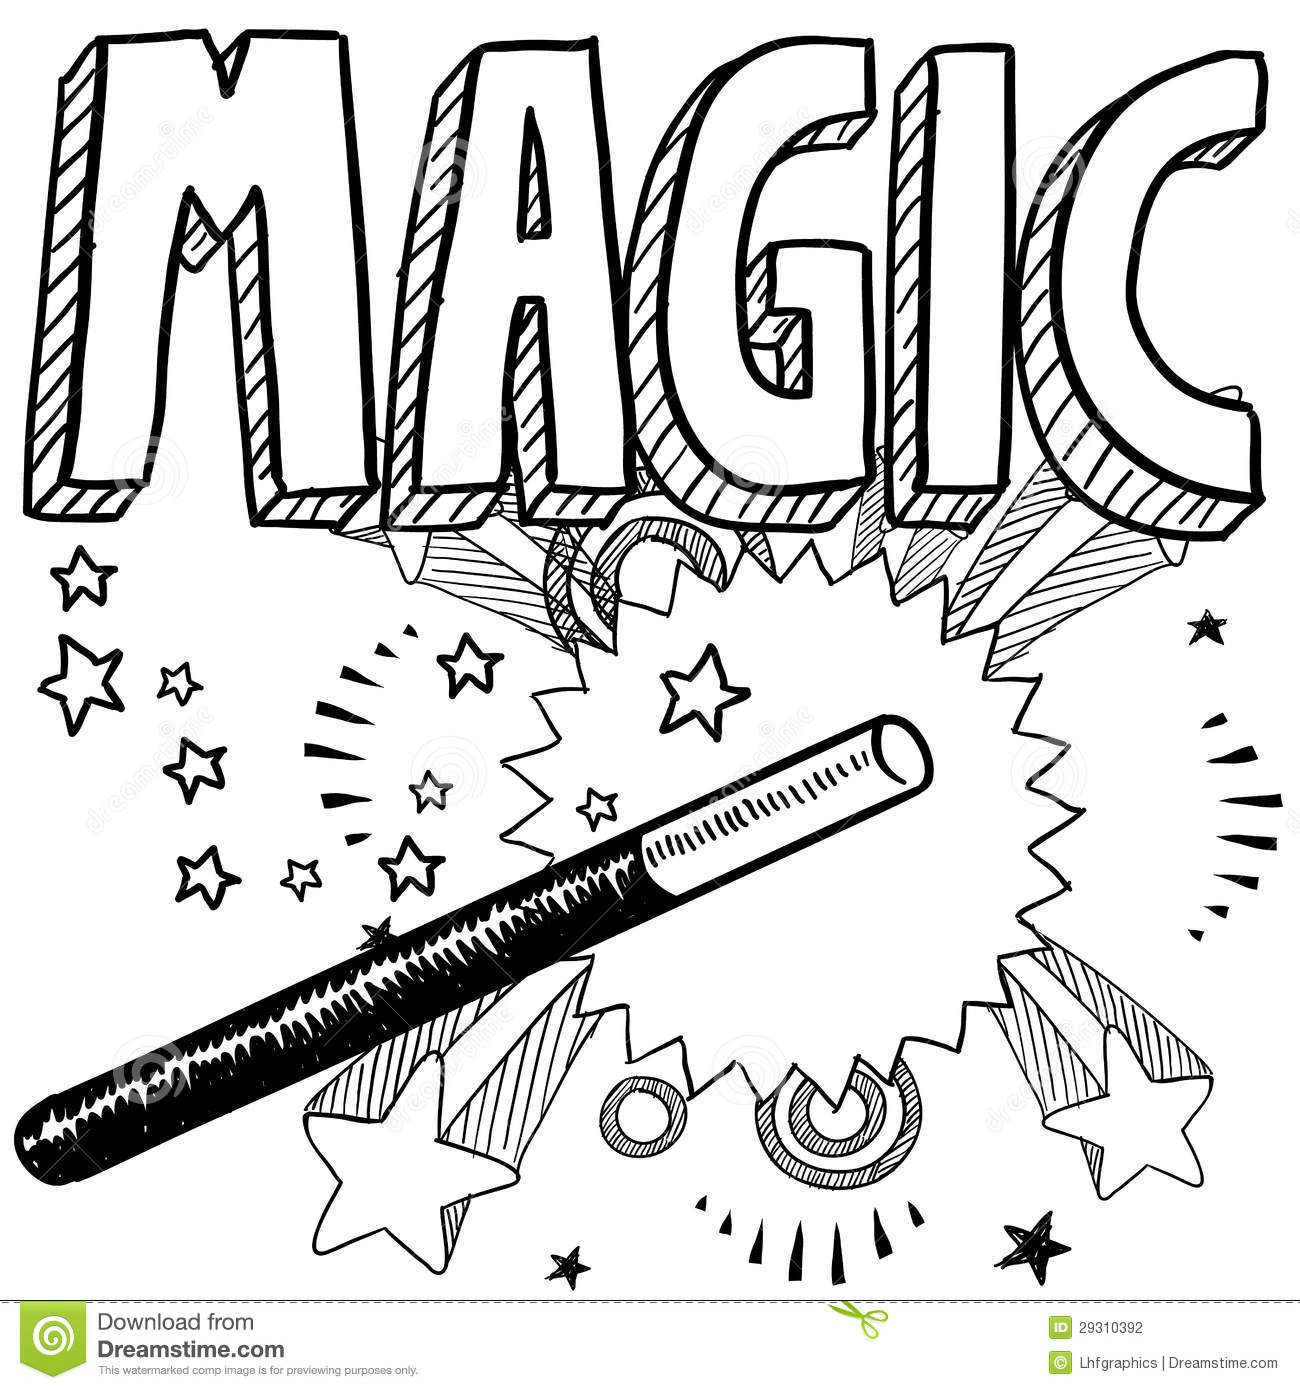 Magic Sketch - Android Apps on Google Play